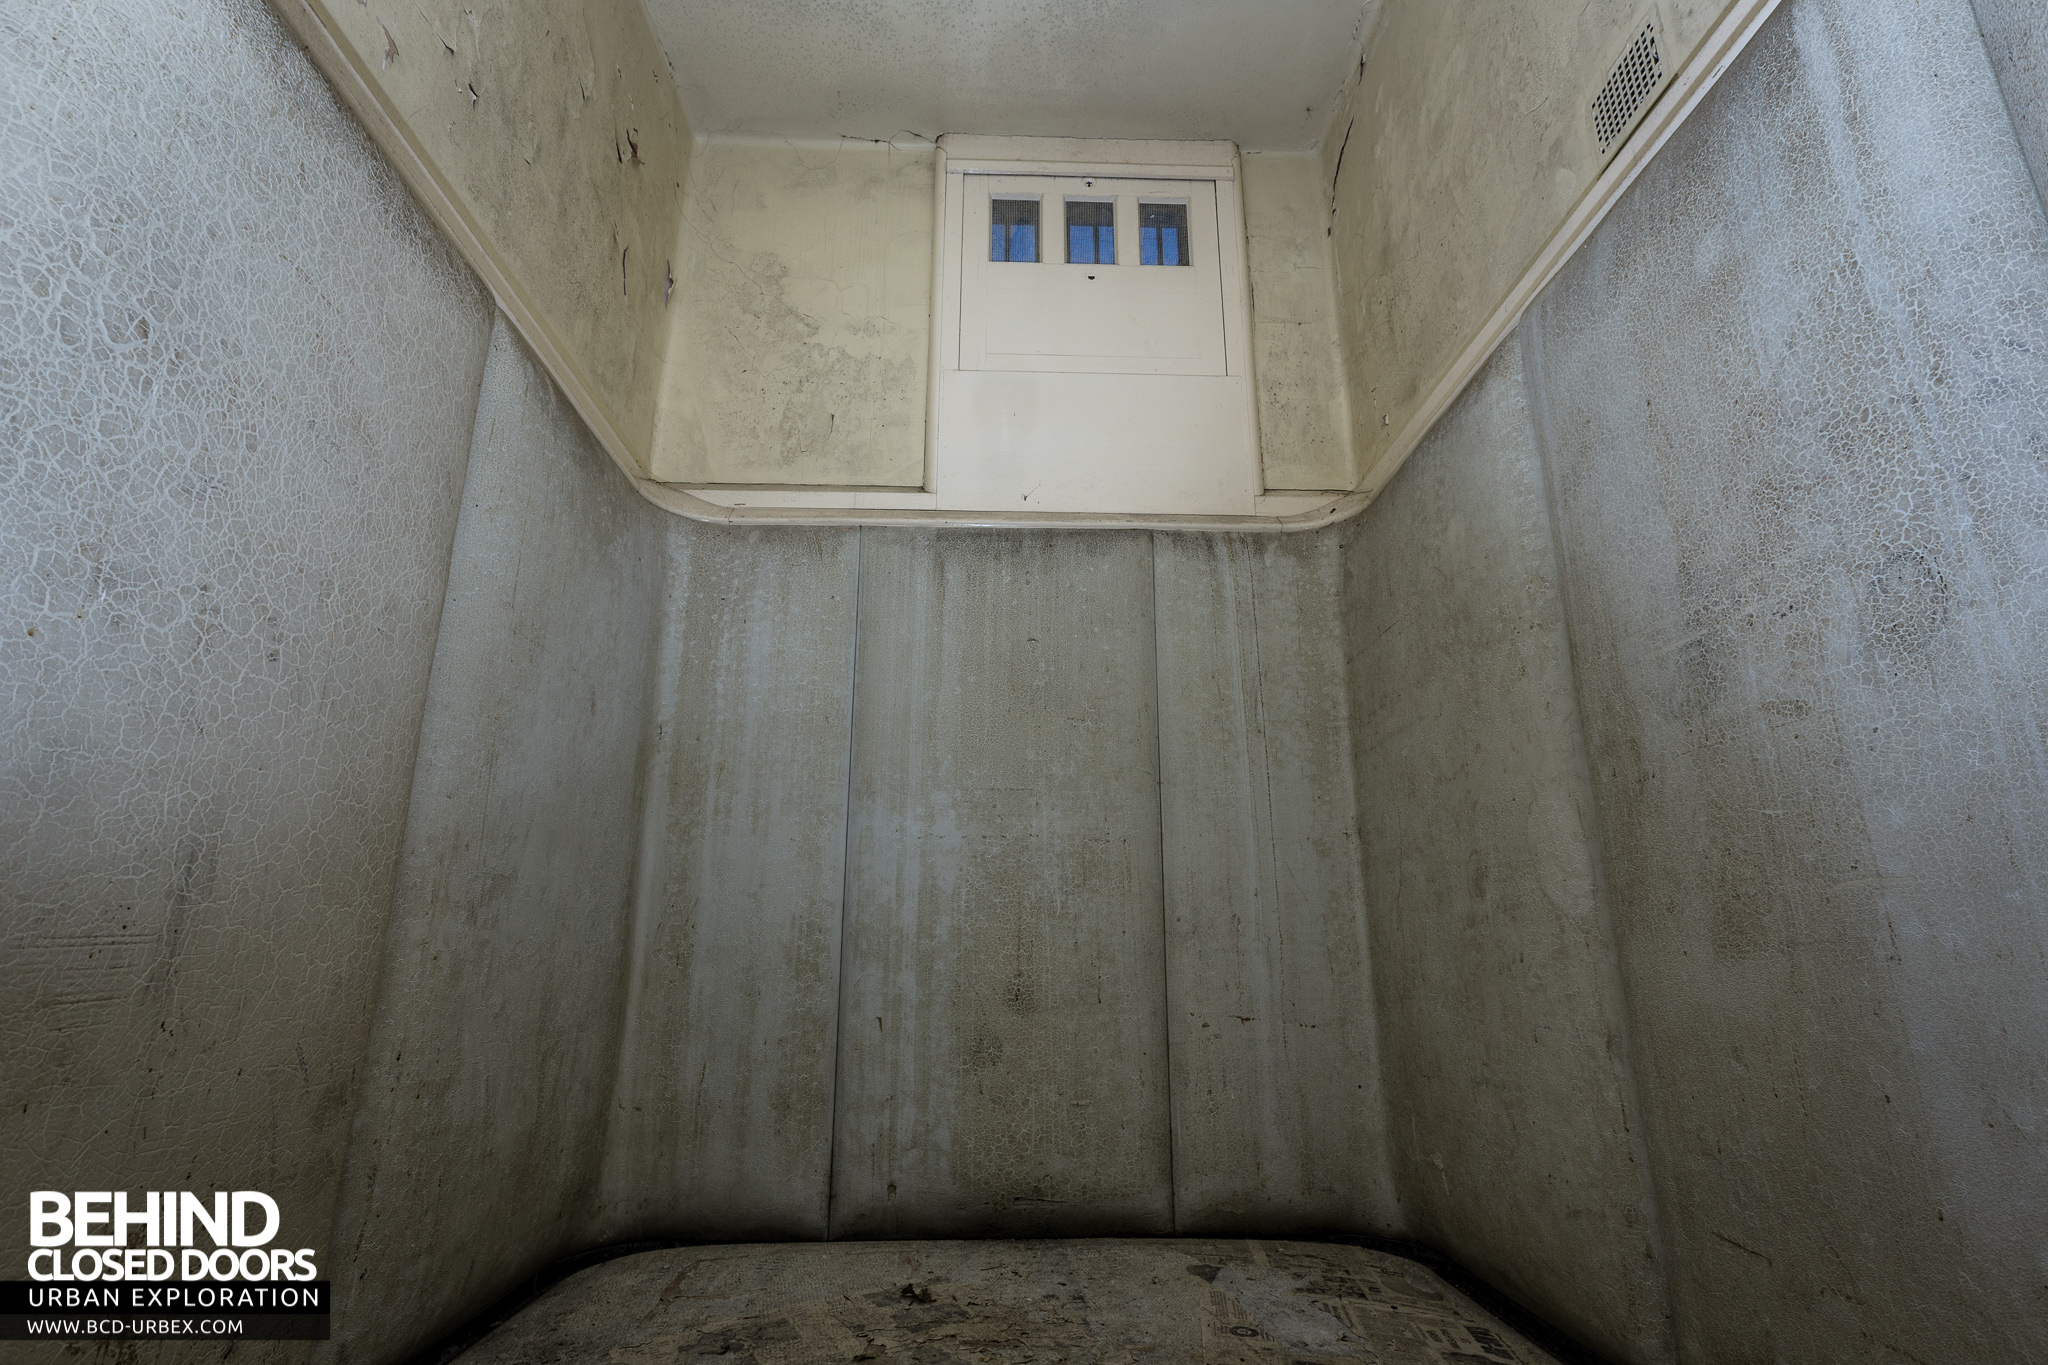 Padded Cell Royal Hospital Haslar G Block Gosport Uk